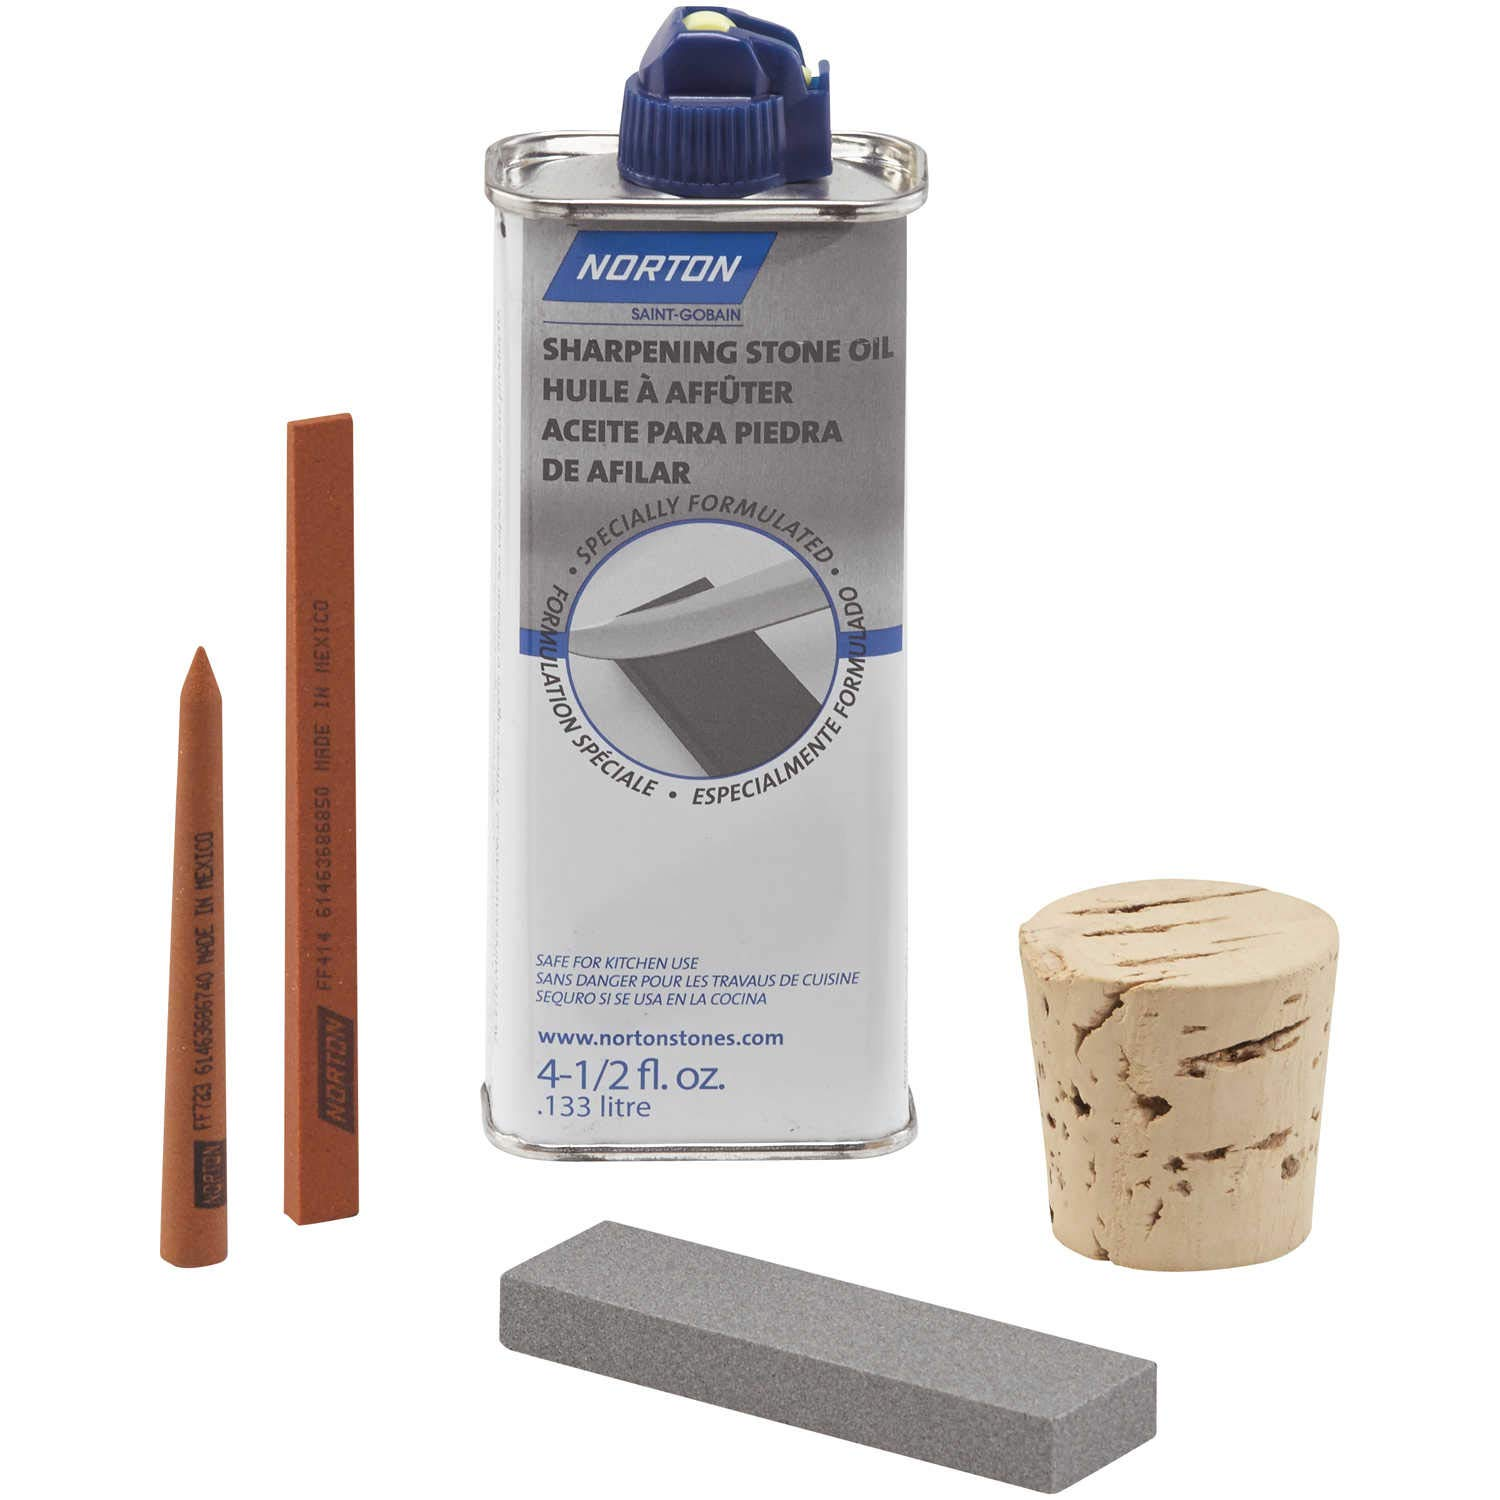 Forestry Suppliers Sharpening Kit for Increment Borers